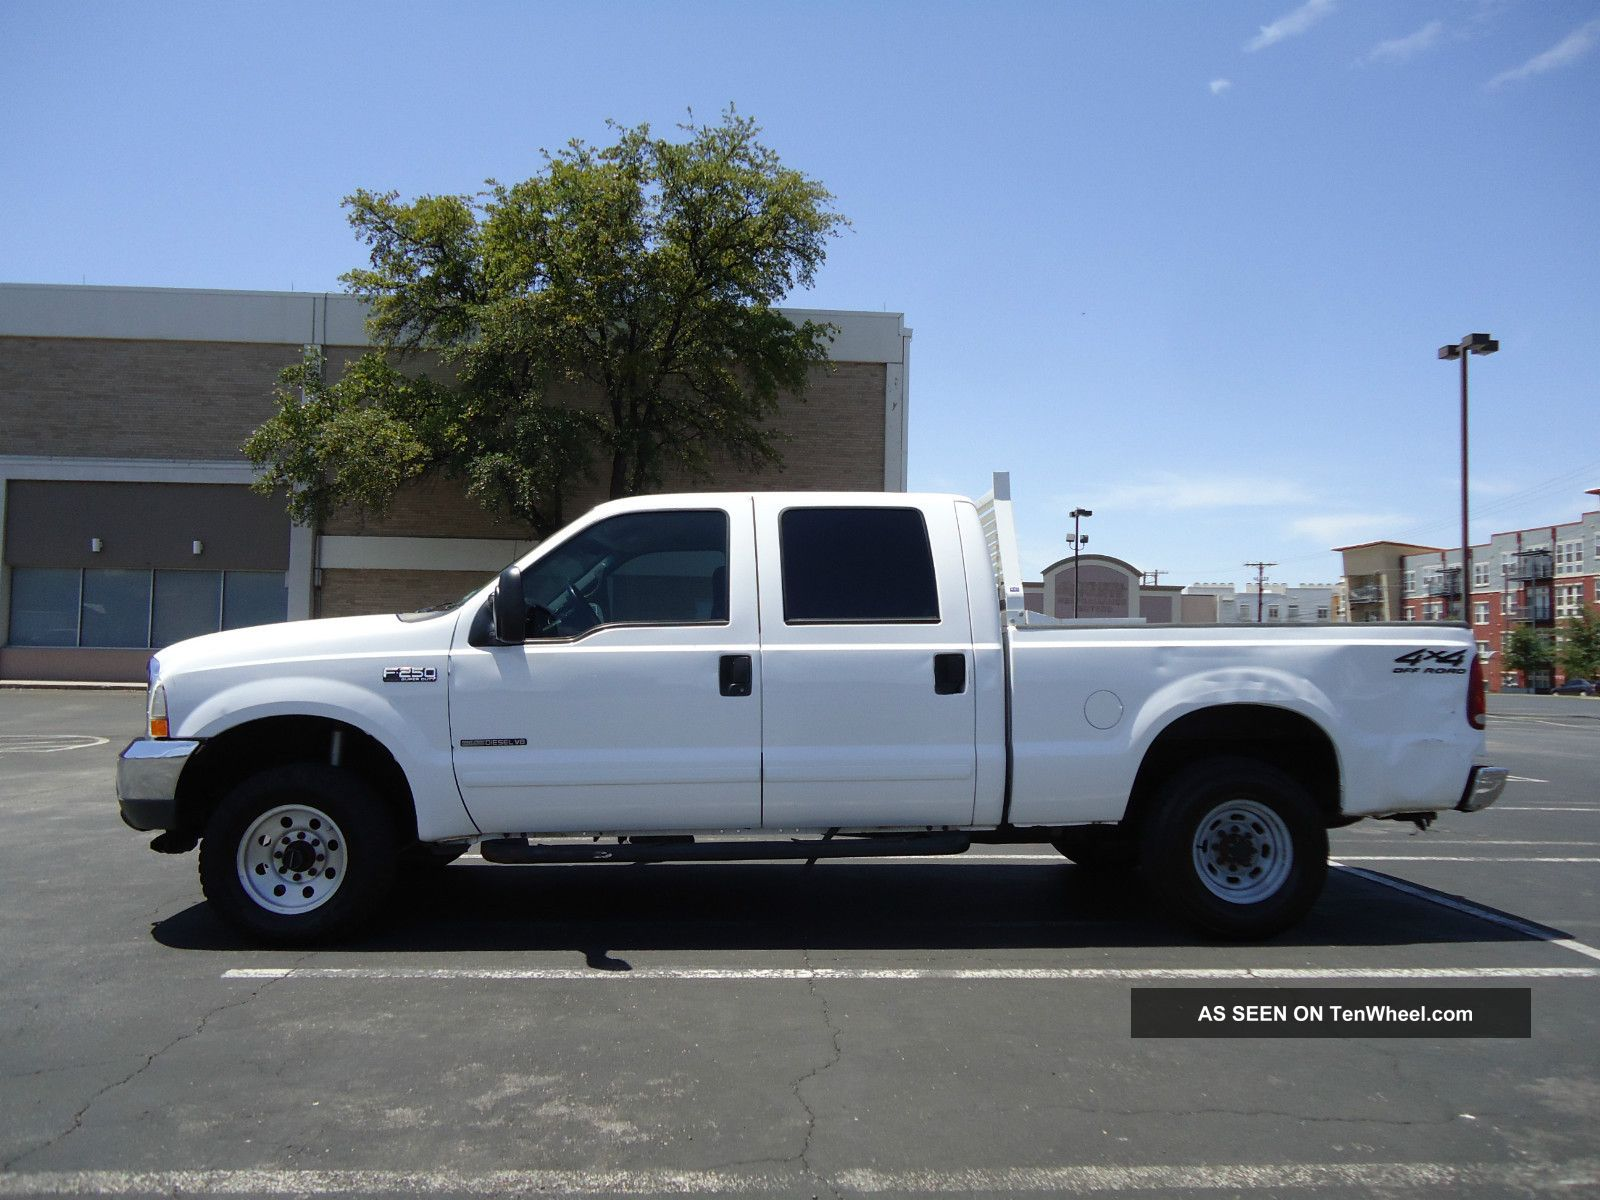 2002 ford f250 xlt 7 3 diesel 4x4 auto runs excellent look. Black Bedroom Furniture Sets. Home Design Ideas